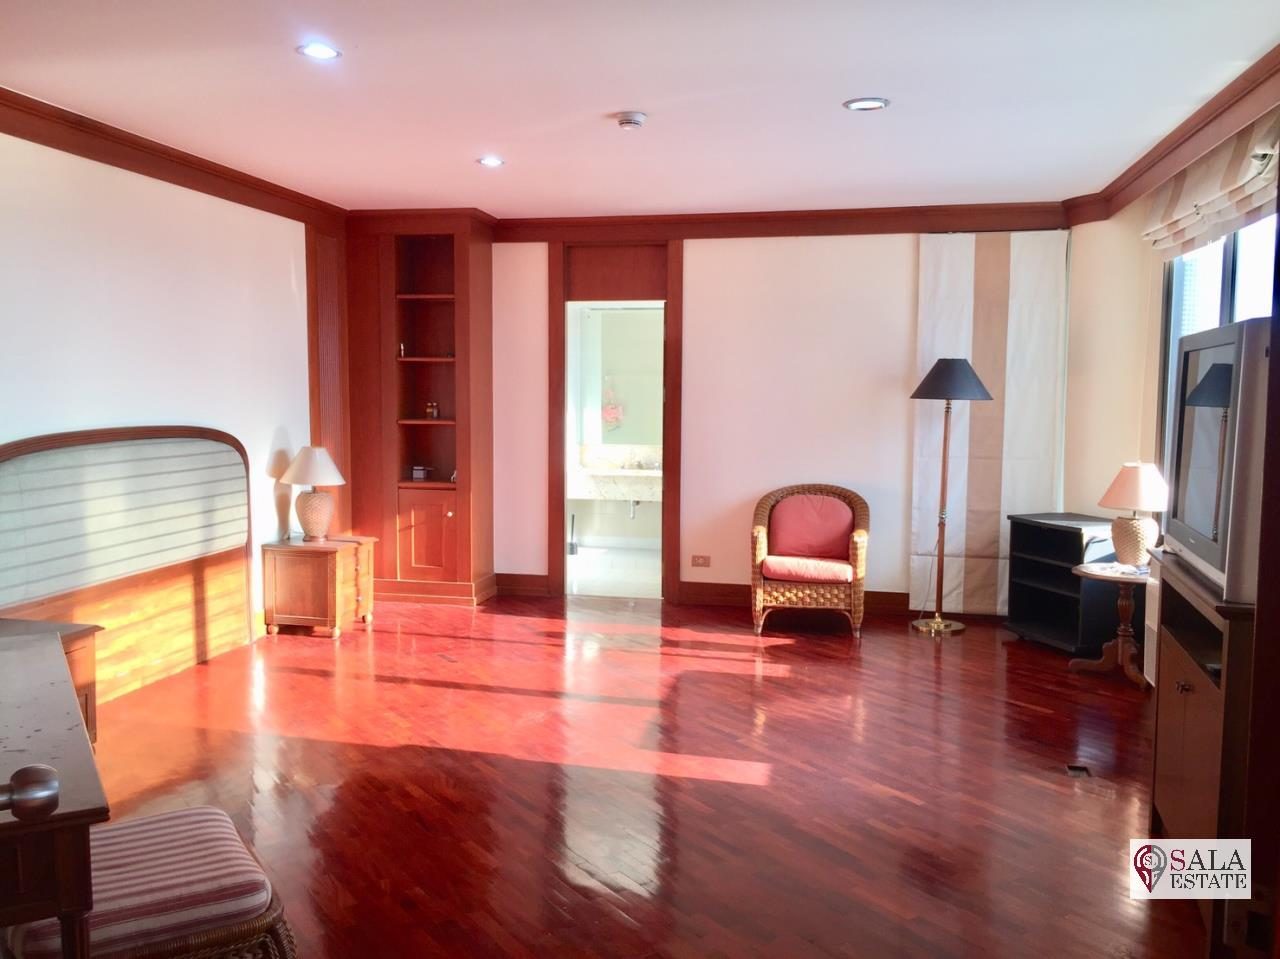 SALA ESTATE Agency's TRIDHOS CITY MARINA – RIVERSIDE-NEAR ICON SIAM-PET ALLOWED, 2 Bedroom 2 Bathroom, Fully furnished, River View 5